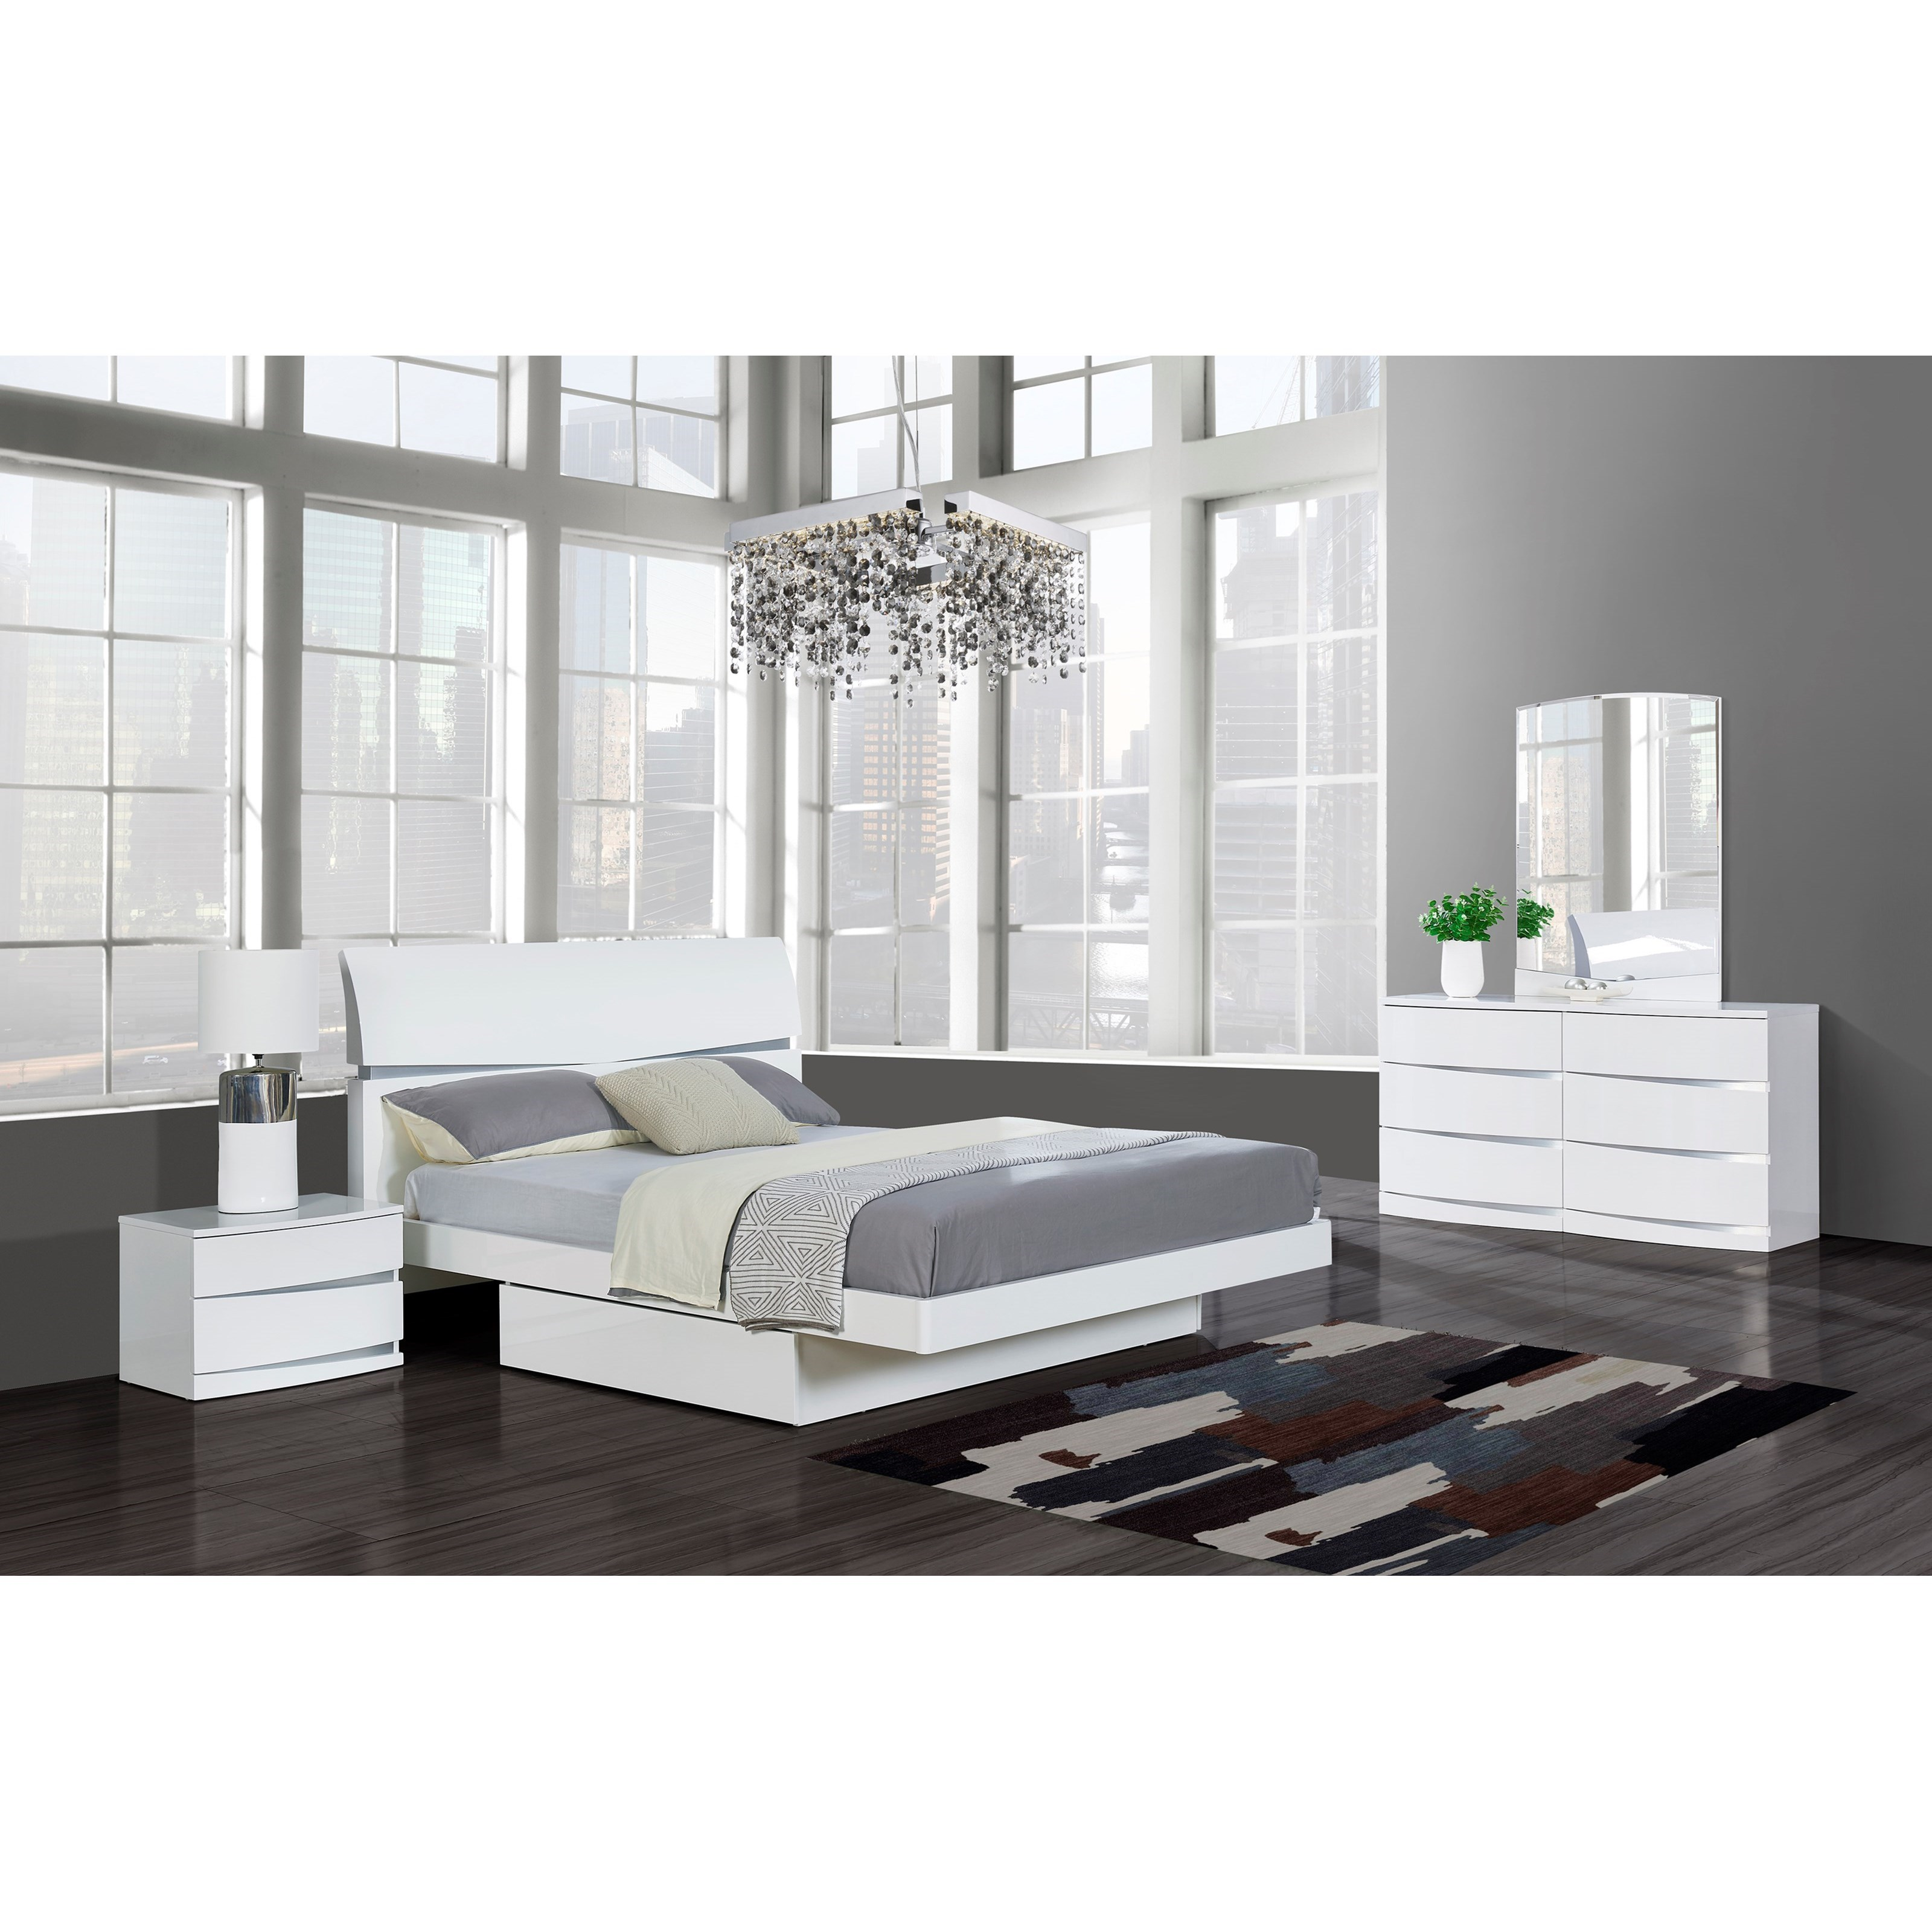 Aurora Queen Bedroom Group by Global Furniture at Value City Furniture